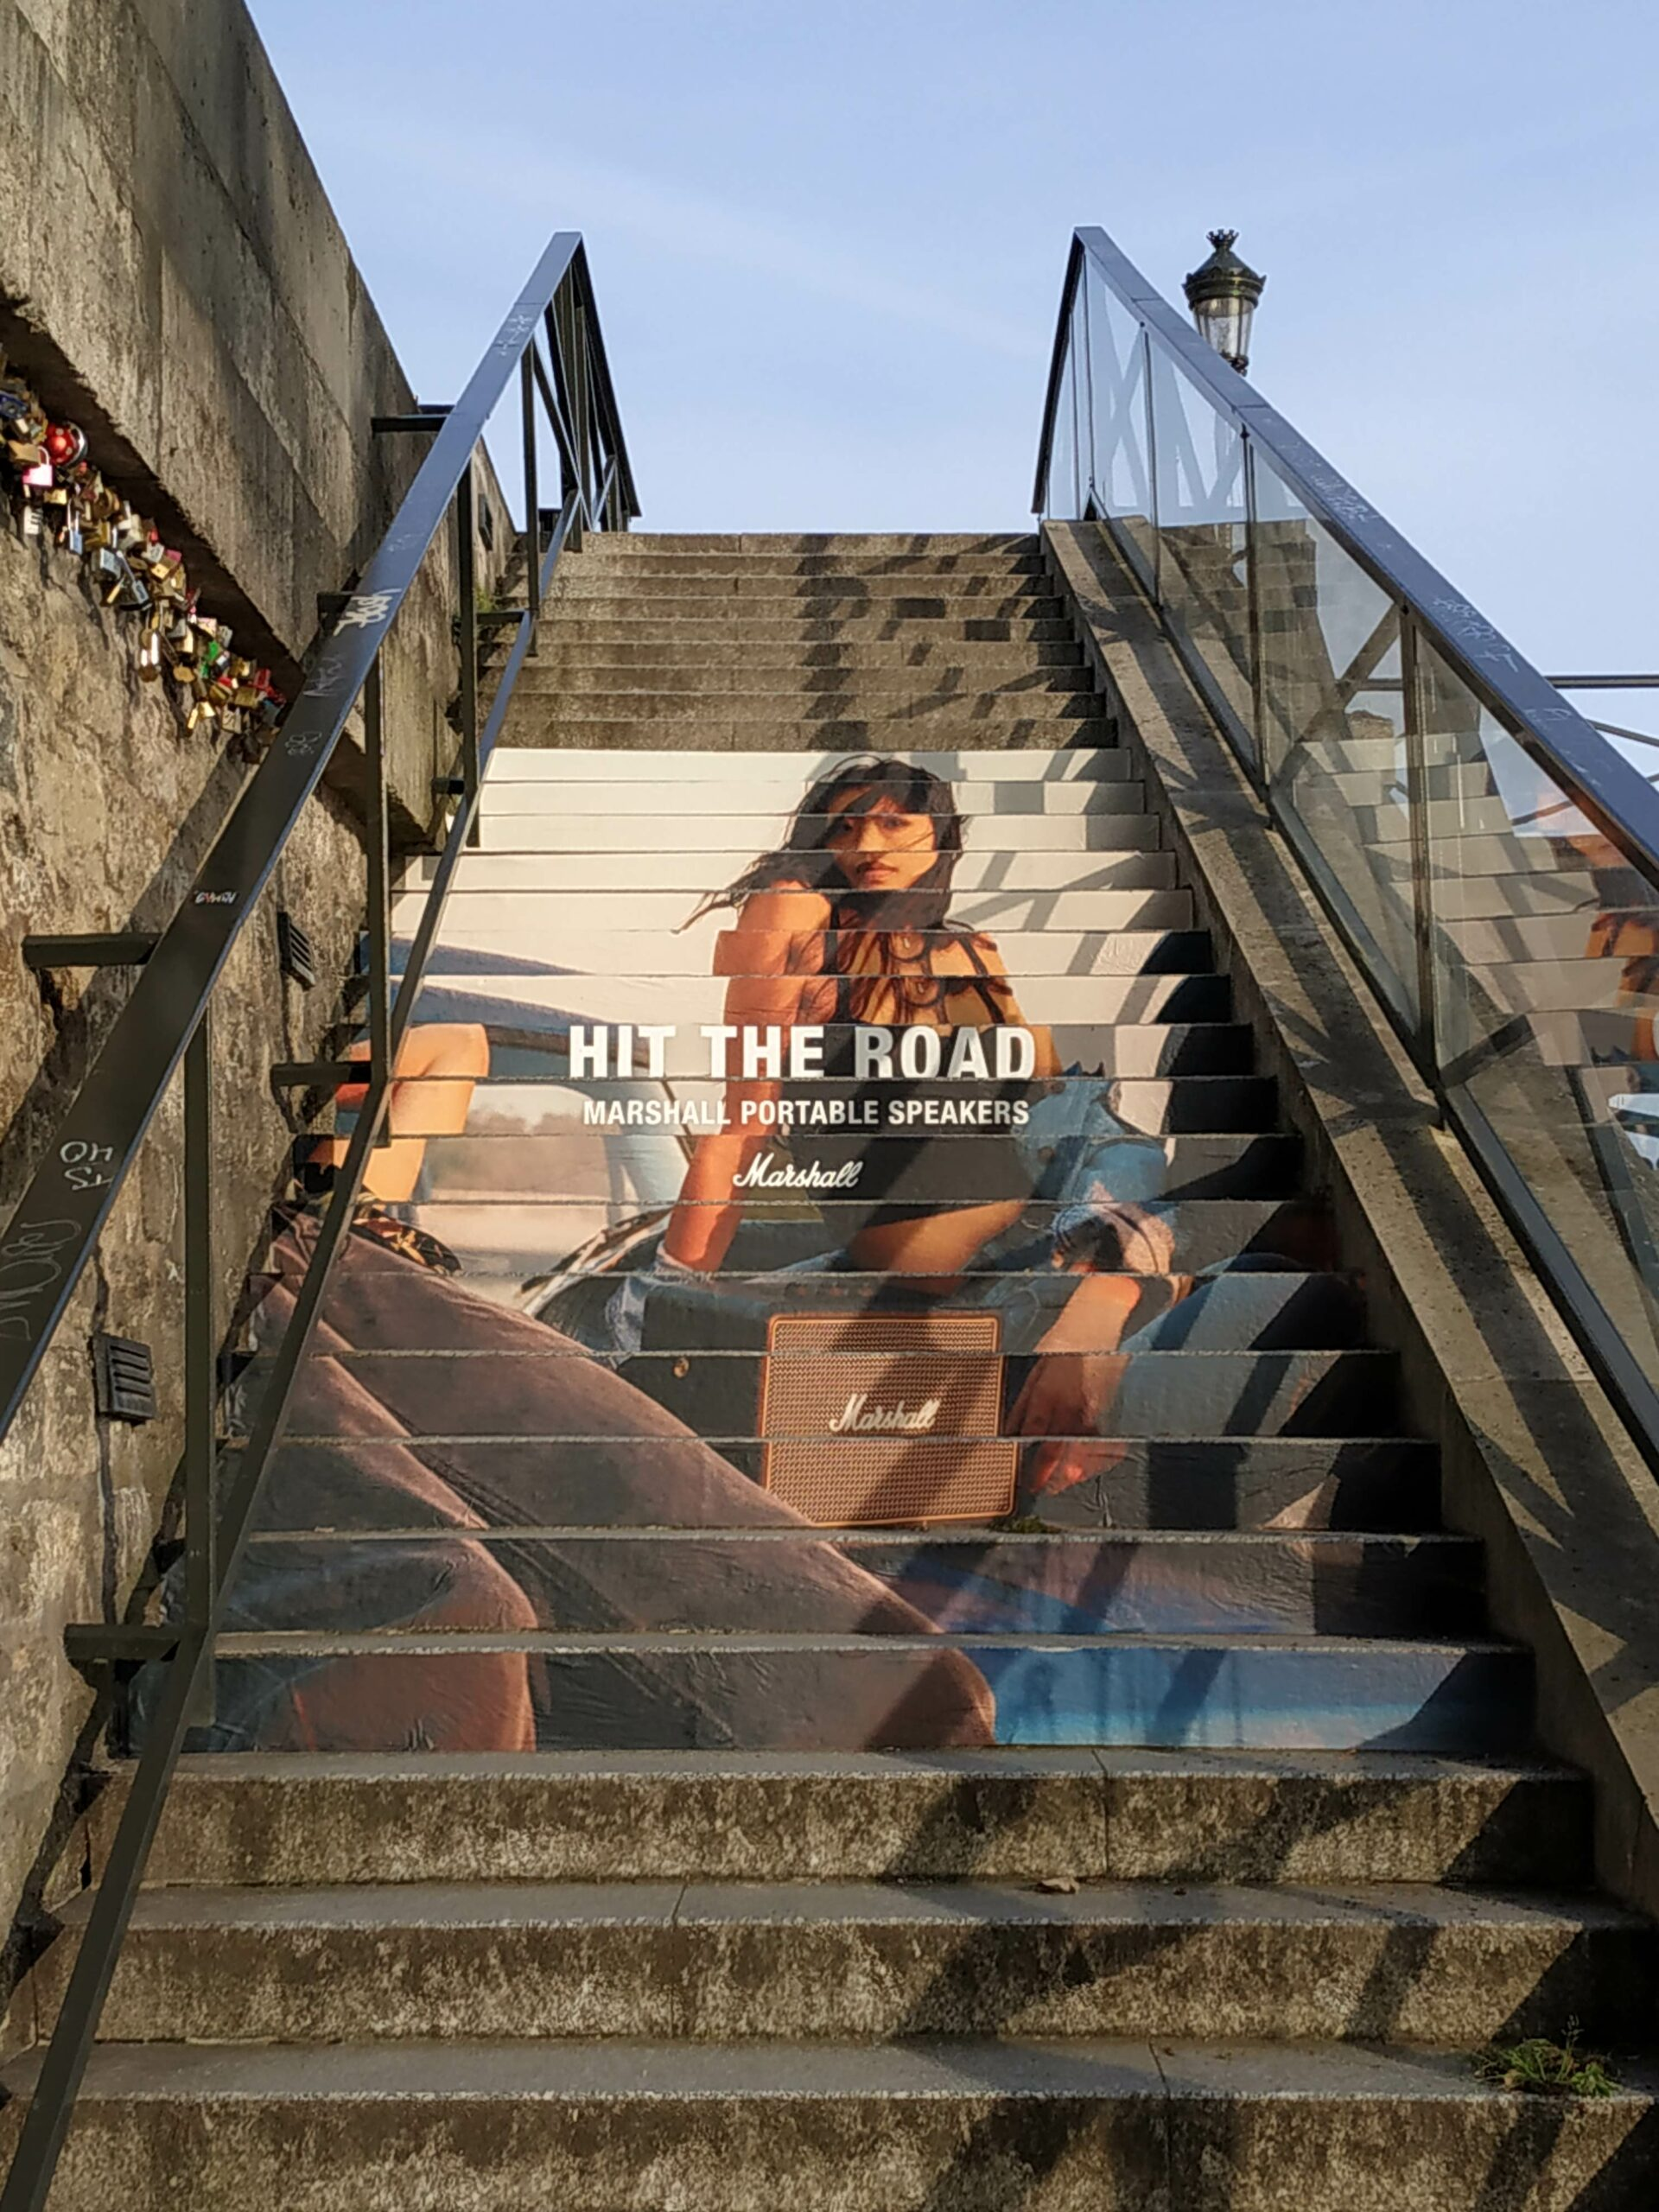 Anolis s'occupe de vos contenus street marketing avec le stair stickering